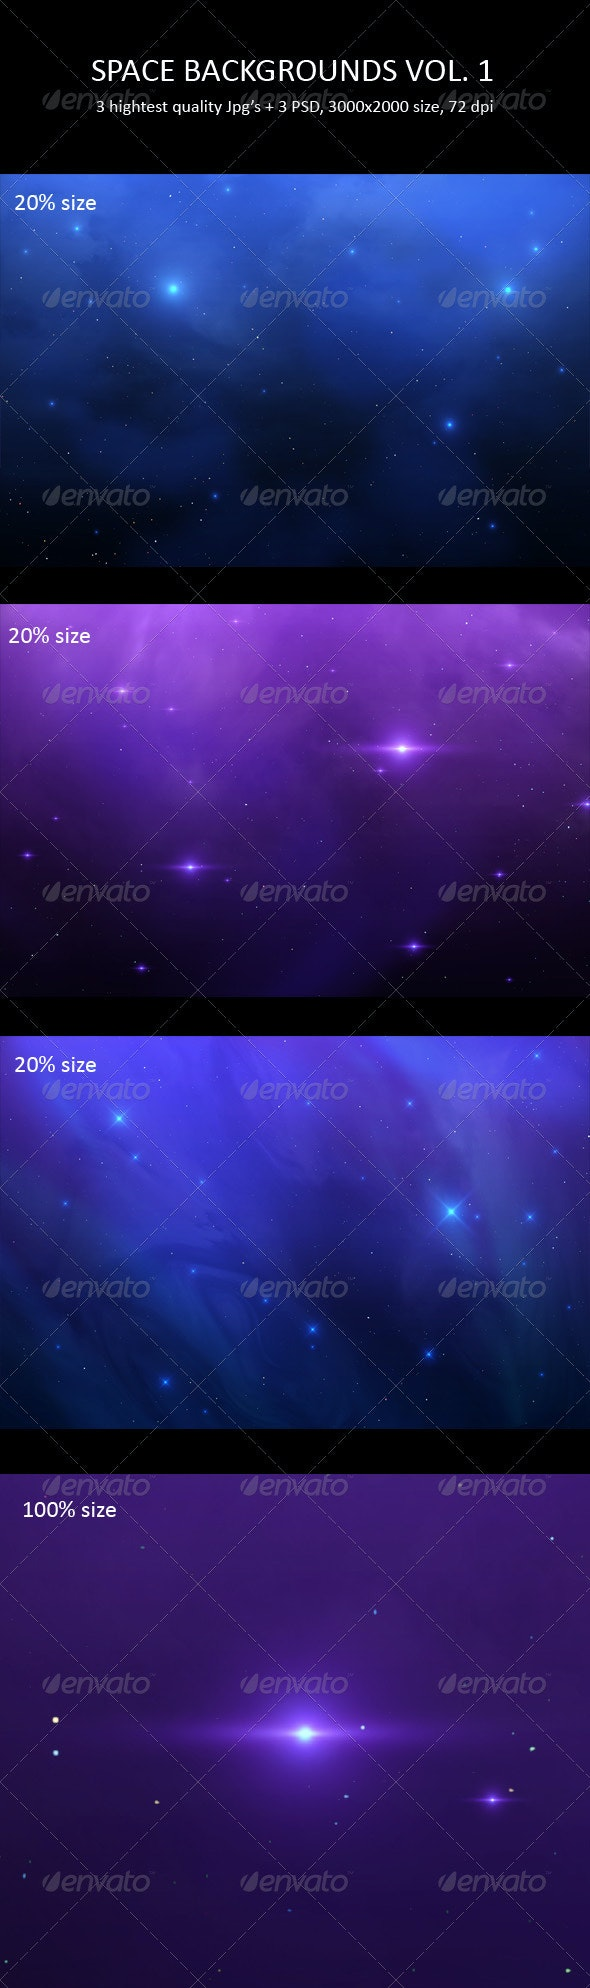 Space Backgrounds Vol. 1 - Backgrounds Graphics